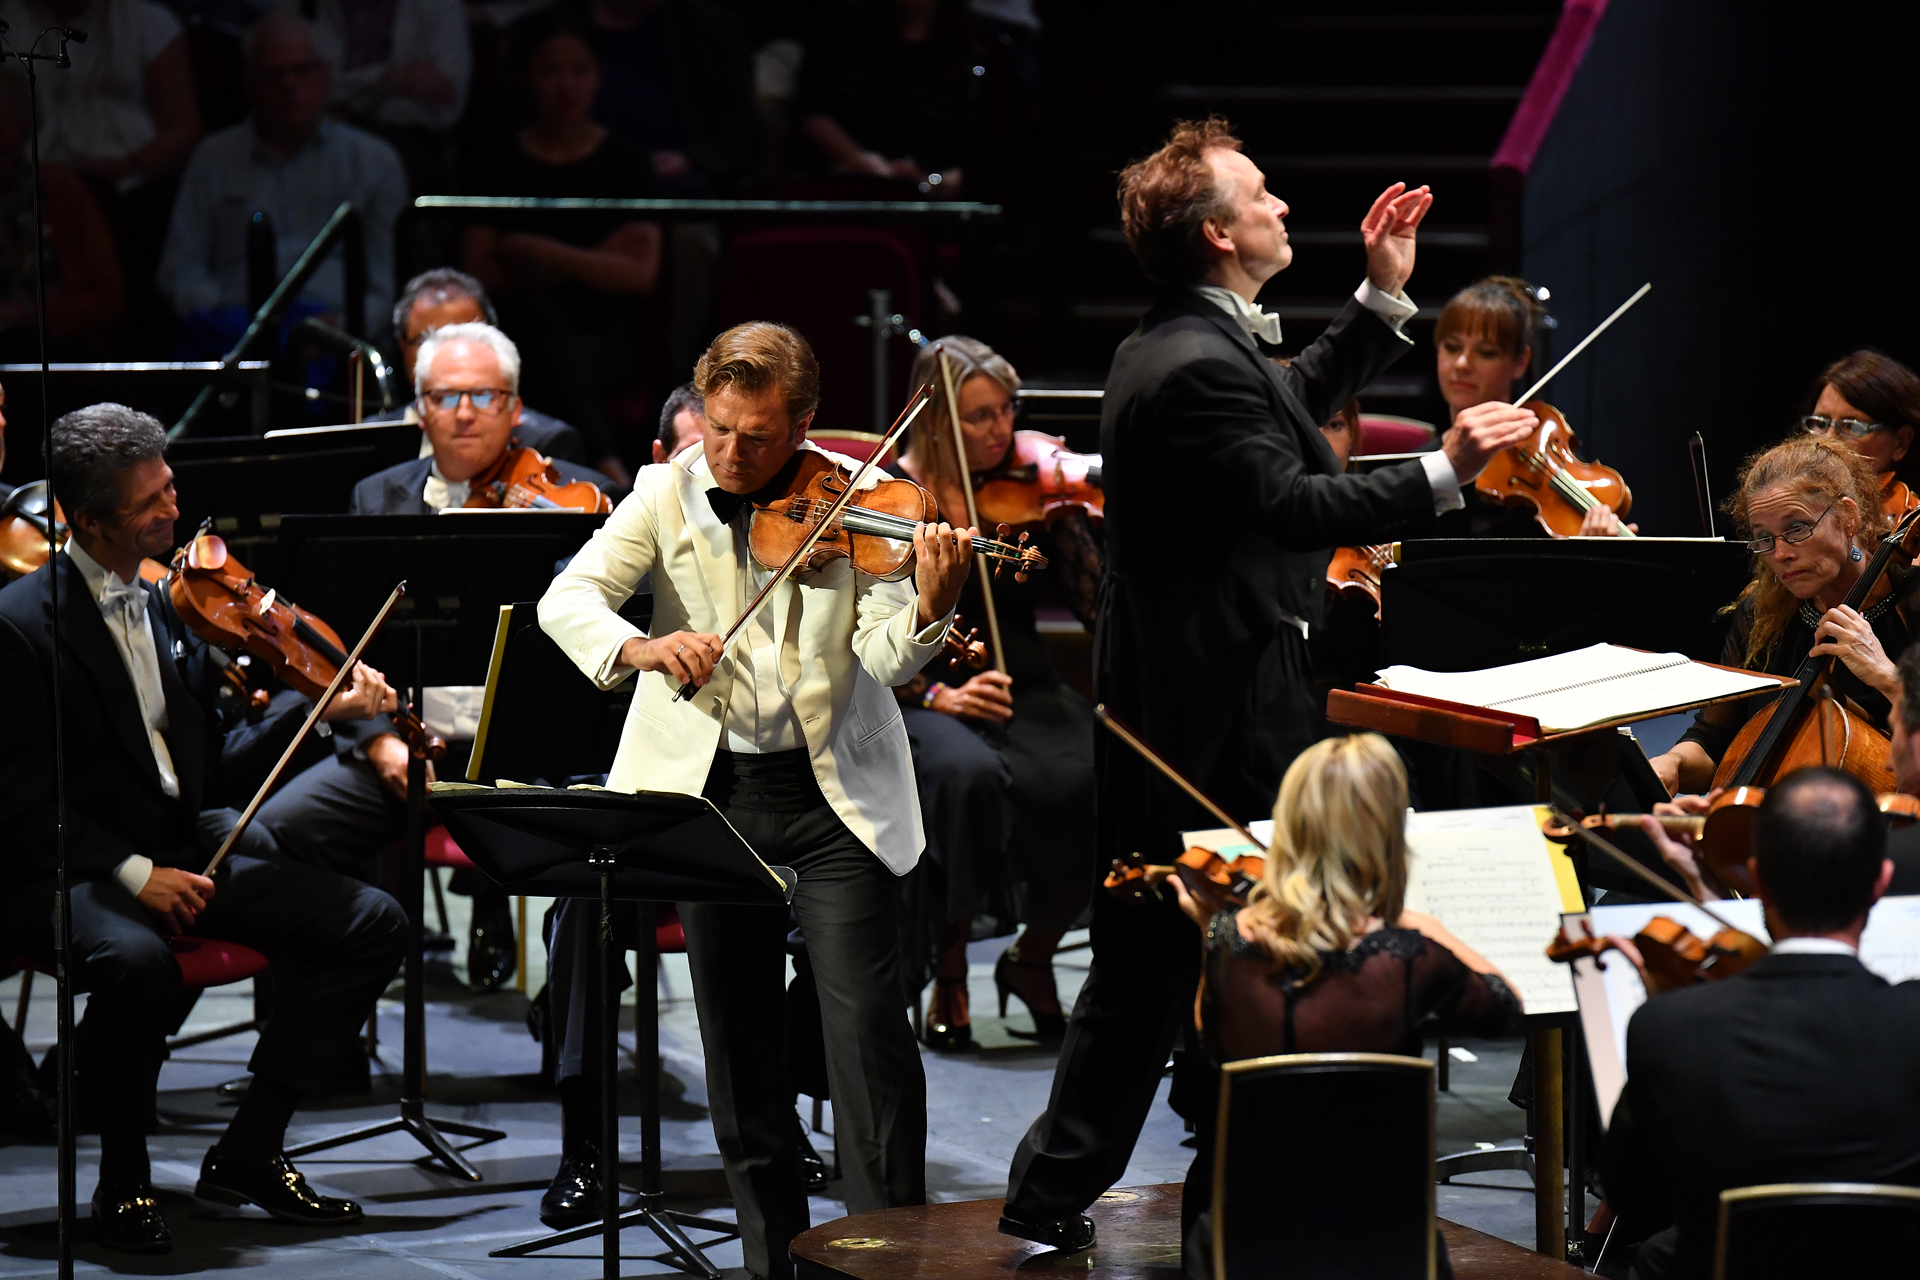 Capucon and Nott in Ravel at the Proms